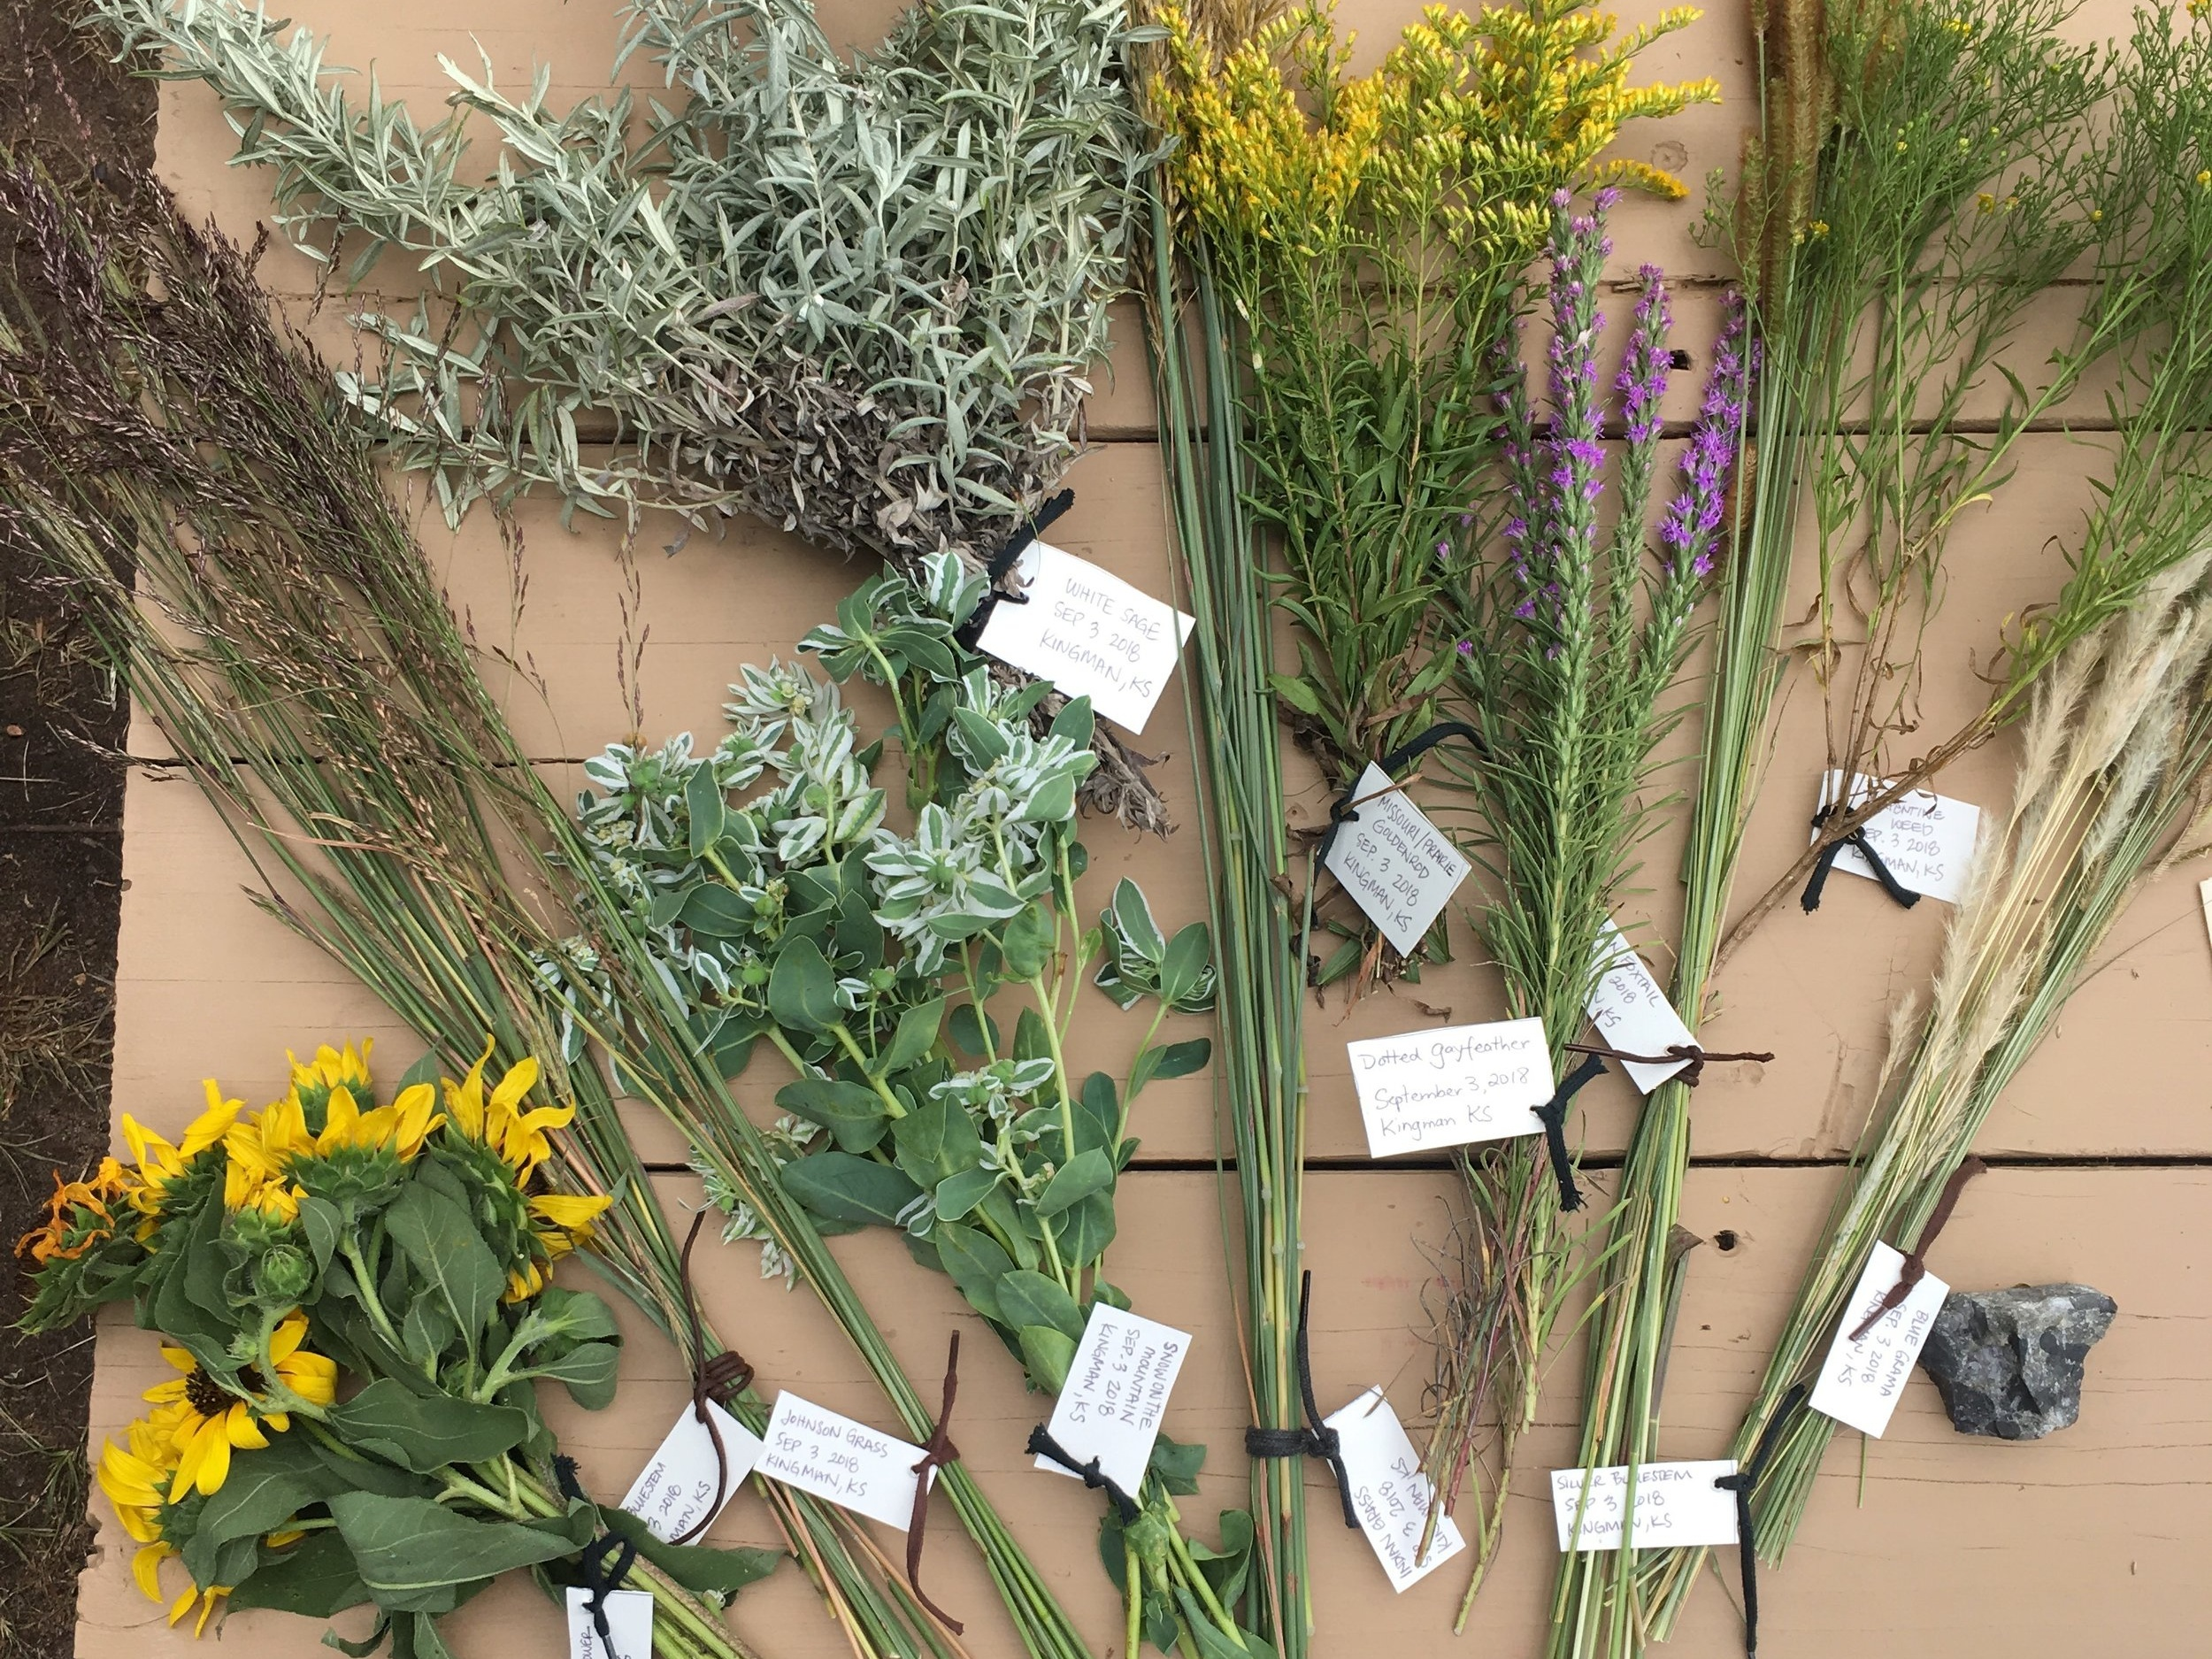 Prairie grasses and flowers harvested and cataloged. (sept 2018)